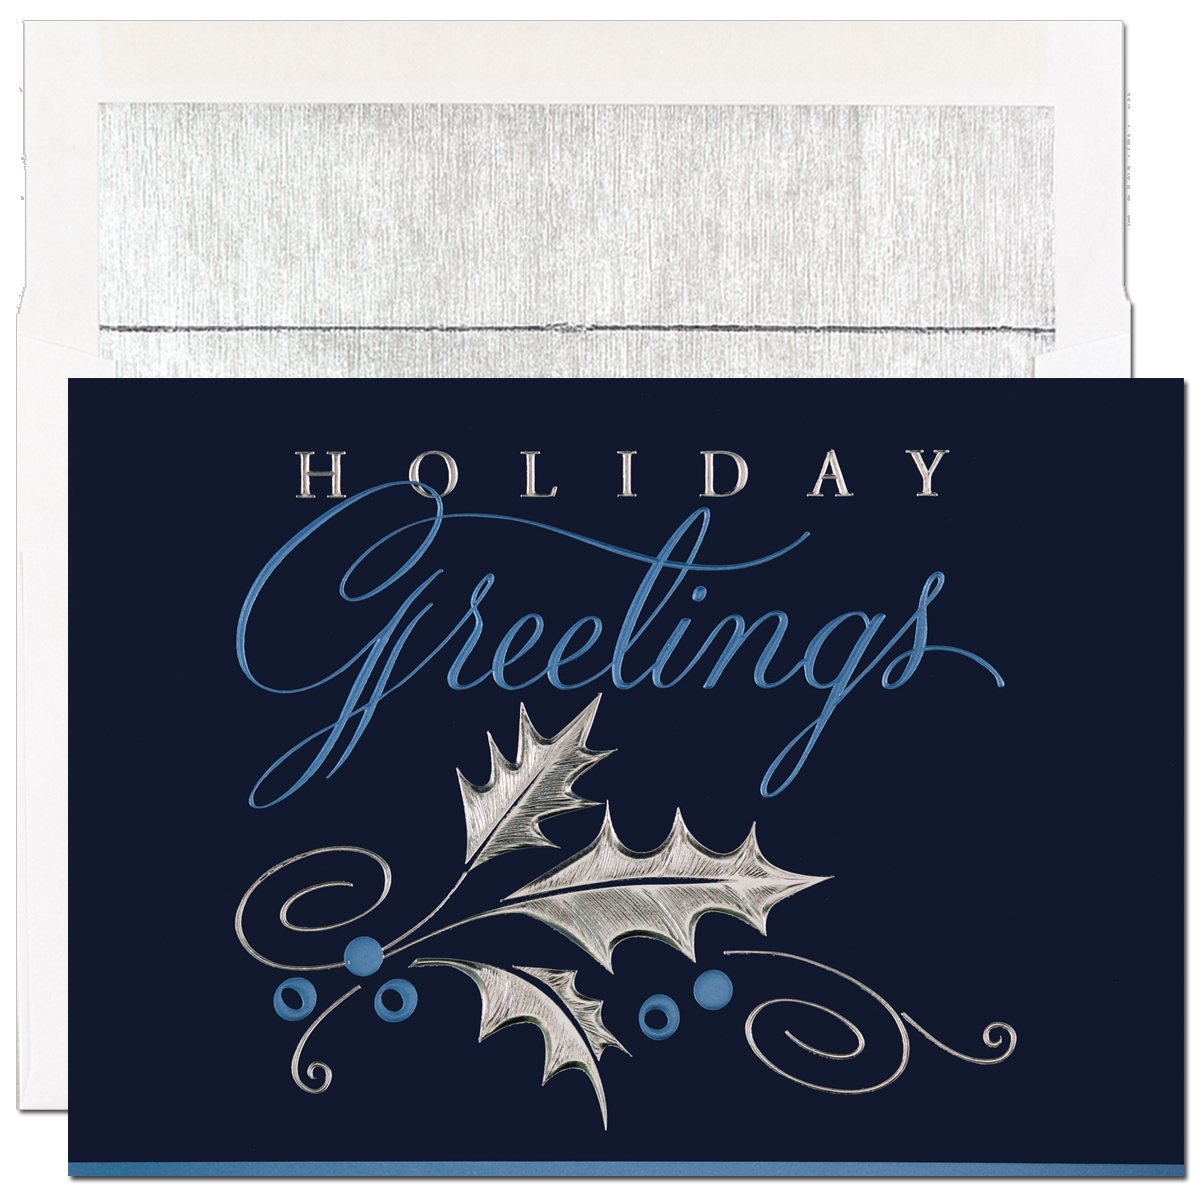 Dark Blue Holiday Greetings Card - Beautiful silver and blue foiled embossed holiday card.  Blank inside is perfect for corporate holiday cards or for the individual that would like to add their own personal greeting. Impress In Print will personalize your greeting and add images or company logos to cards. (Please note image fee is $25.00) Comes with white with silver lined envelopes.